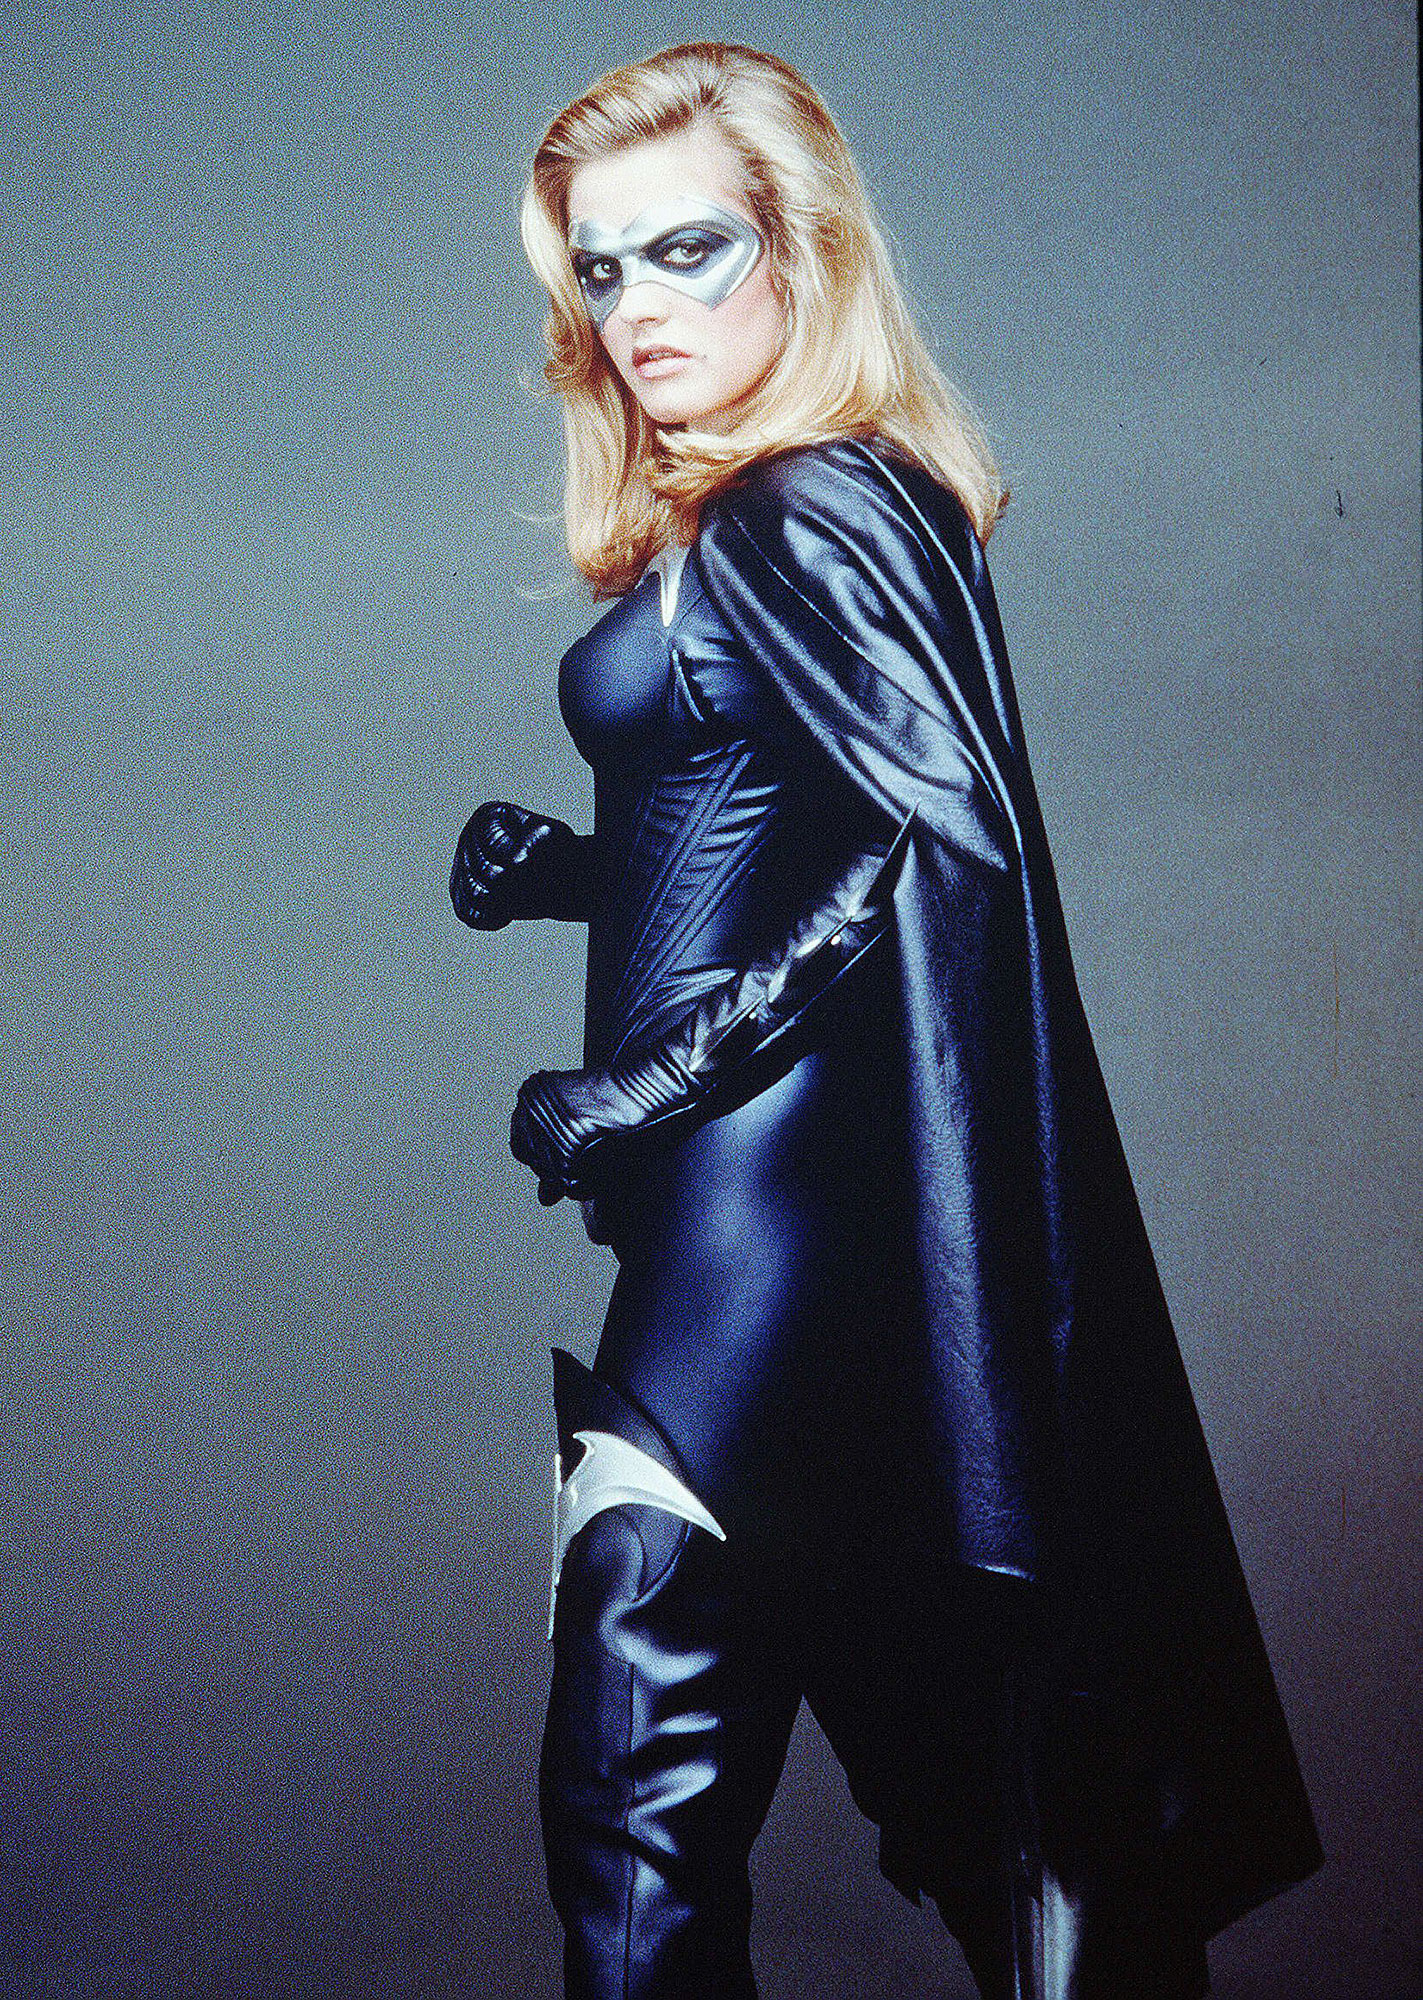 Alicia Silverstone as Batgirl Wasnt Happy With Filming Experience on Batman & Robin